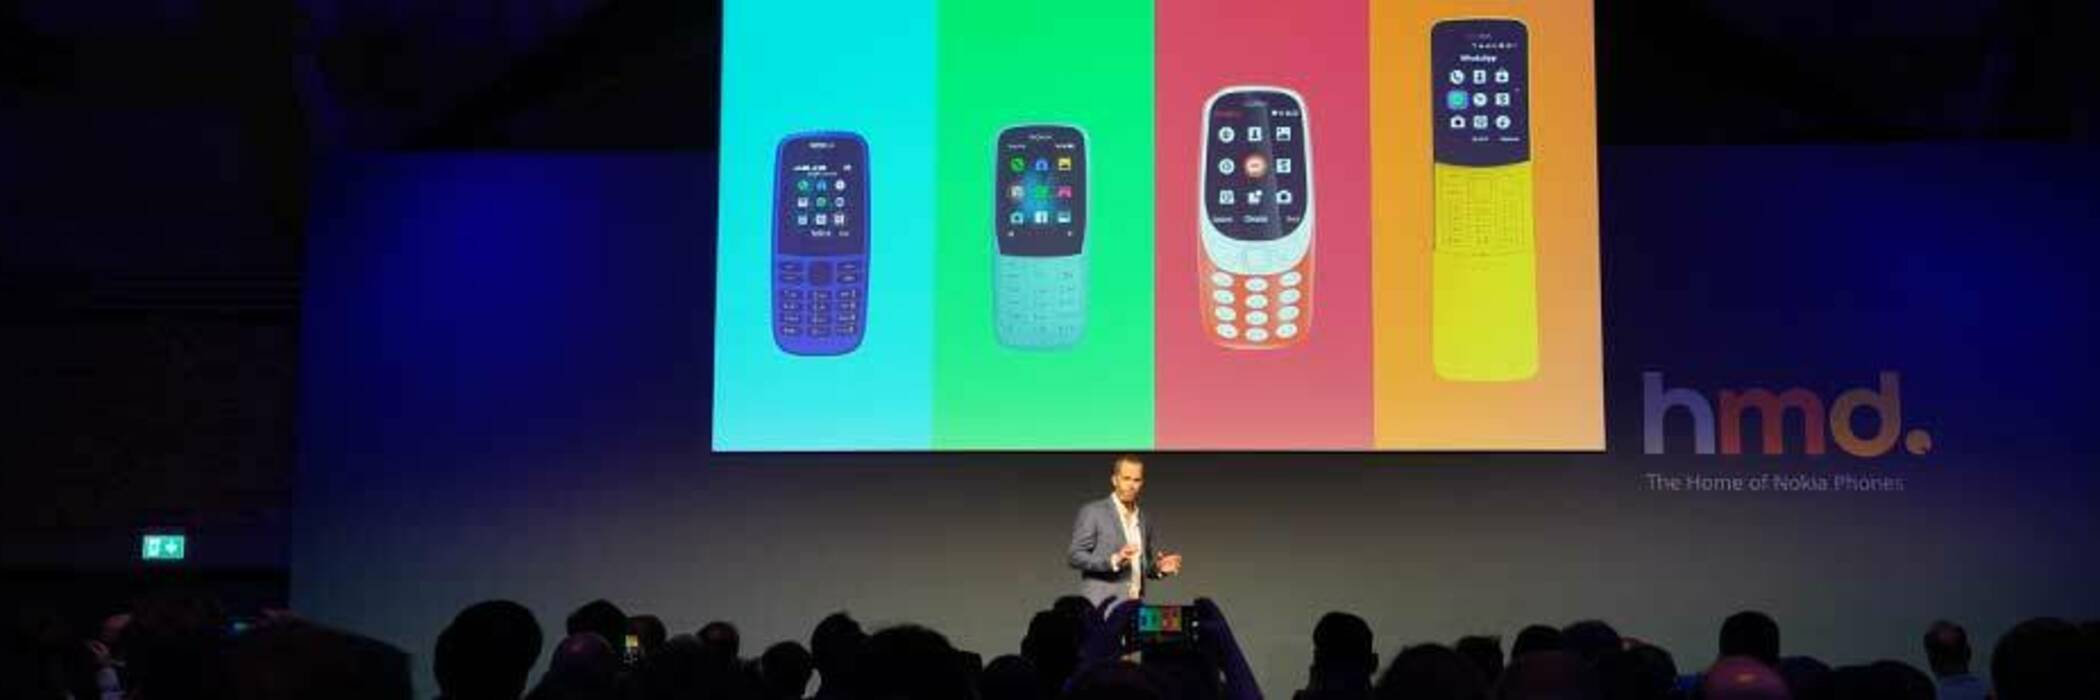 Nokia's feature phones displayed on projector at IFA Berlin electronics trade show.